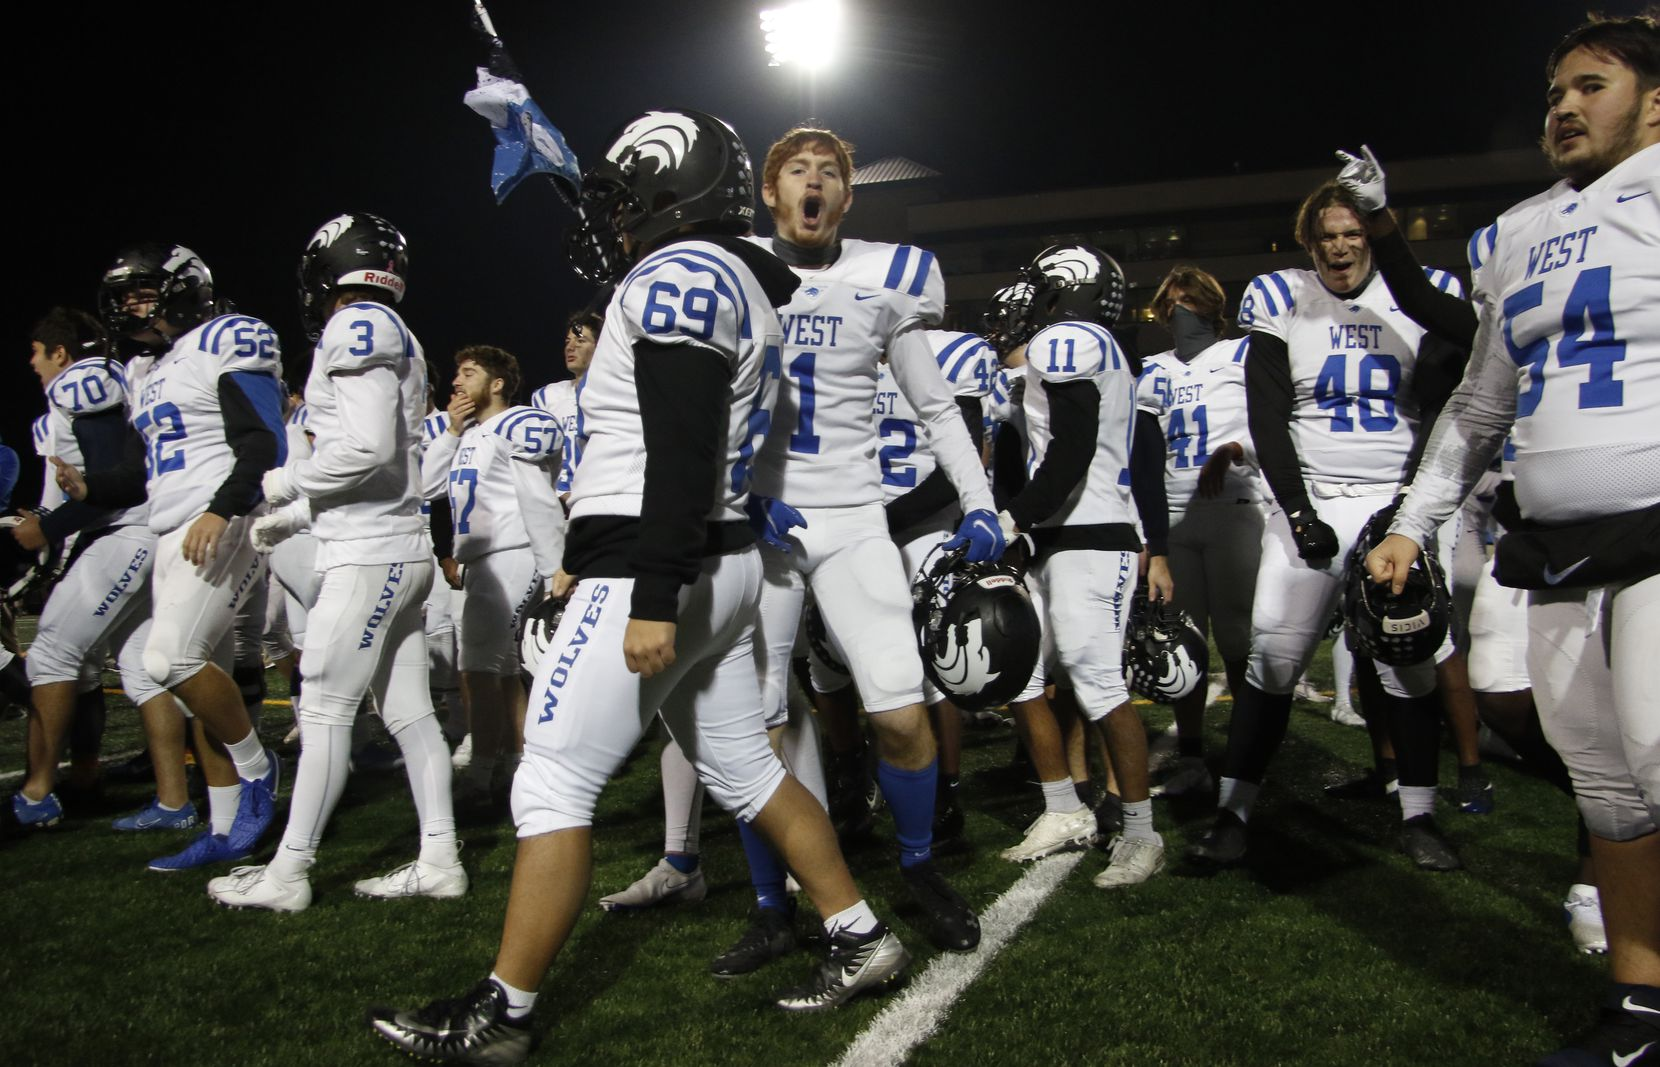 Plano West receiver Brayden Ardis (1) lets out a celebratory yell after the Plano West band finished playing their school song following their 31-24 come-from-behind victory over Plano to earn a playoff berth. The two teams played their District 6-6A football game at Clark Stadium in Plano on December 4, 2020. (Steve Hamm/ Special Contributor)